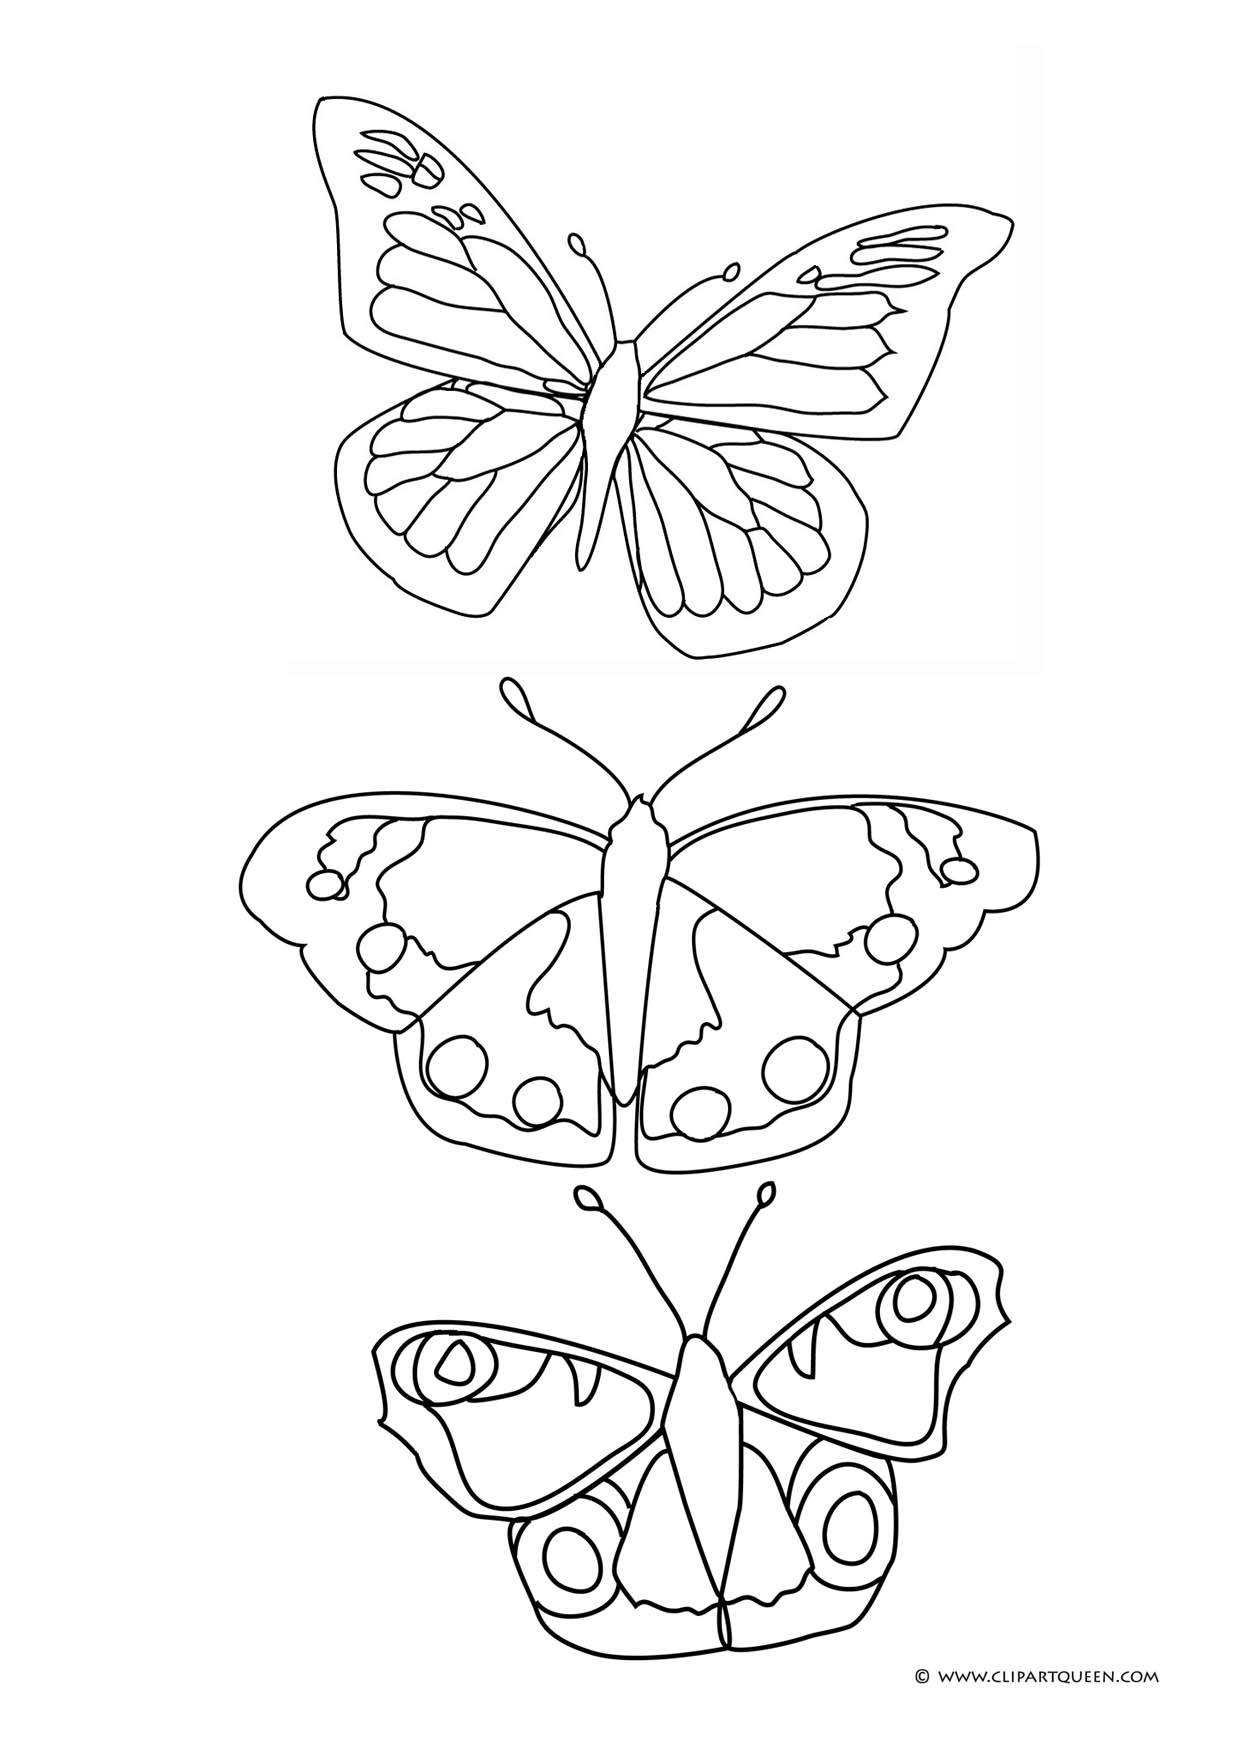 butterfly clipart to color butterfly drawing for kids with color it39s easy how to color to butterfly clipart